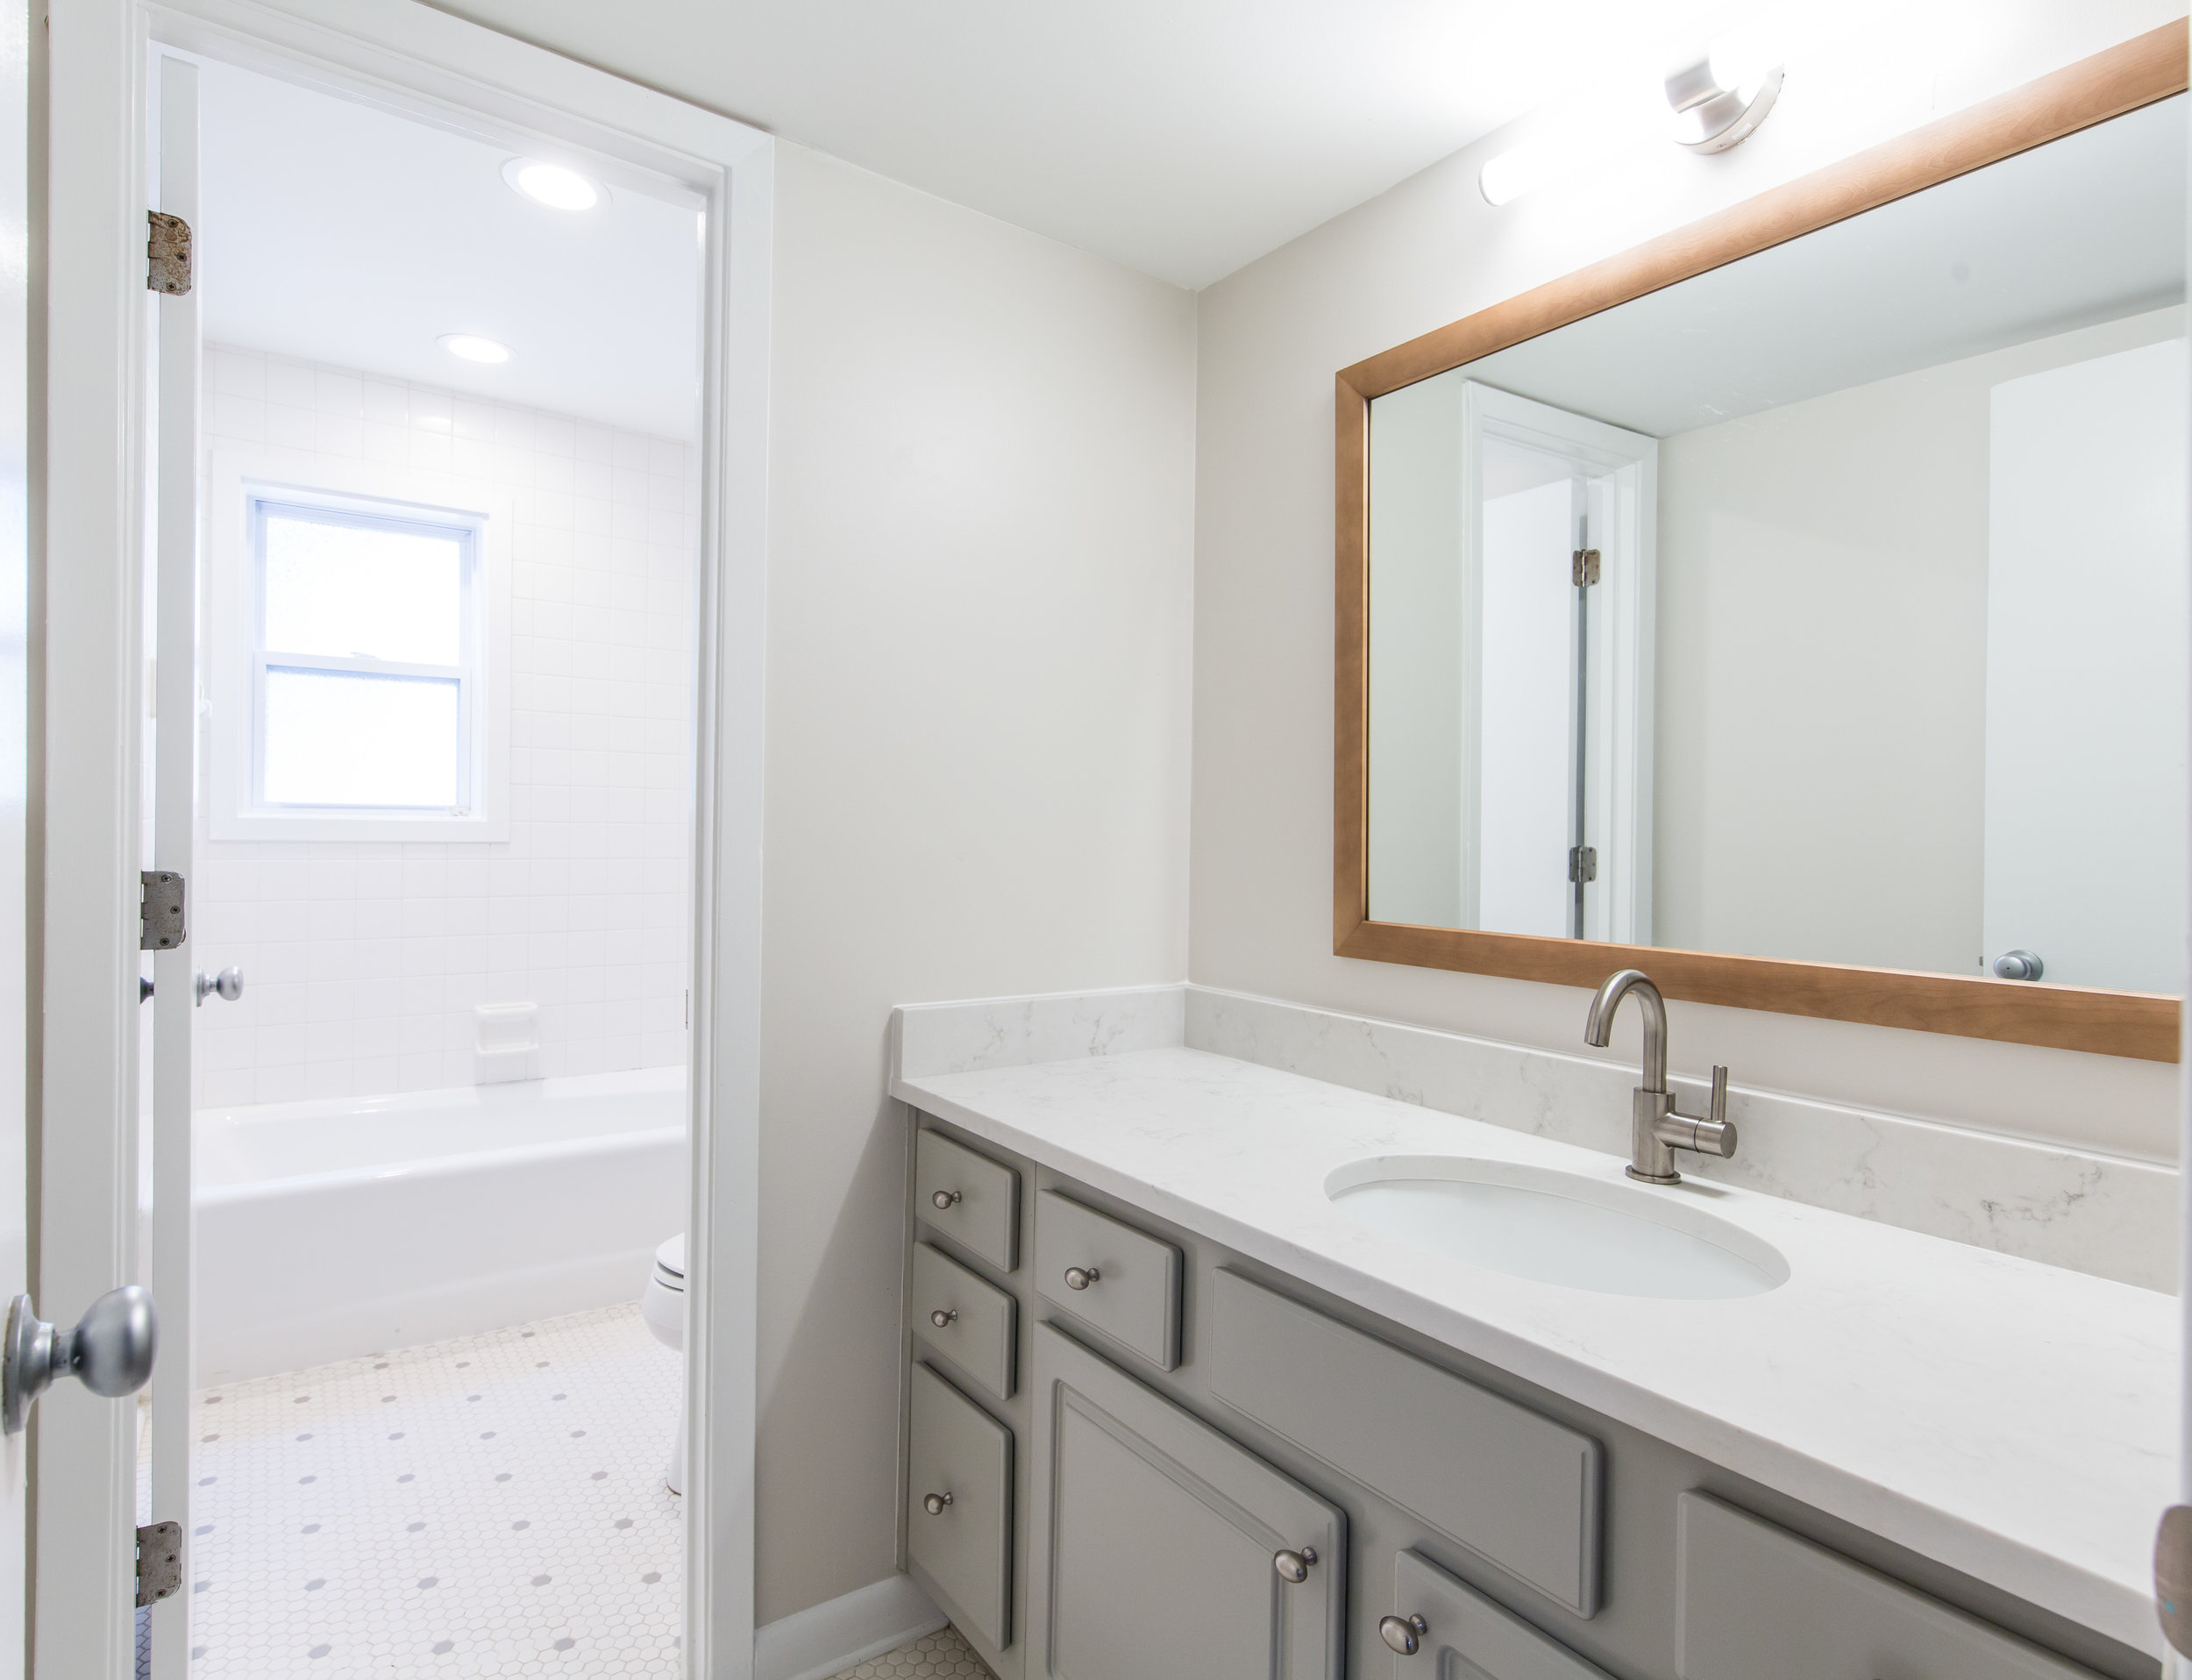 575 Flat Shoals Unit 9-Bath.jpg